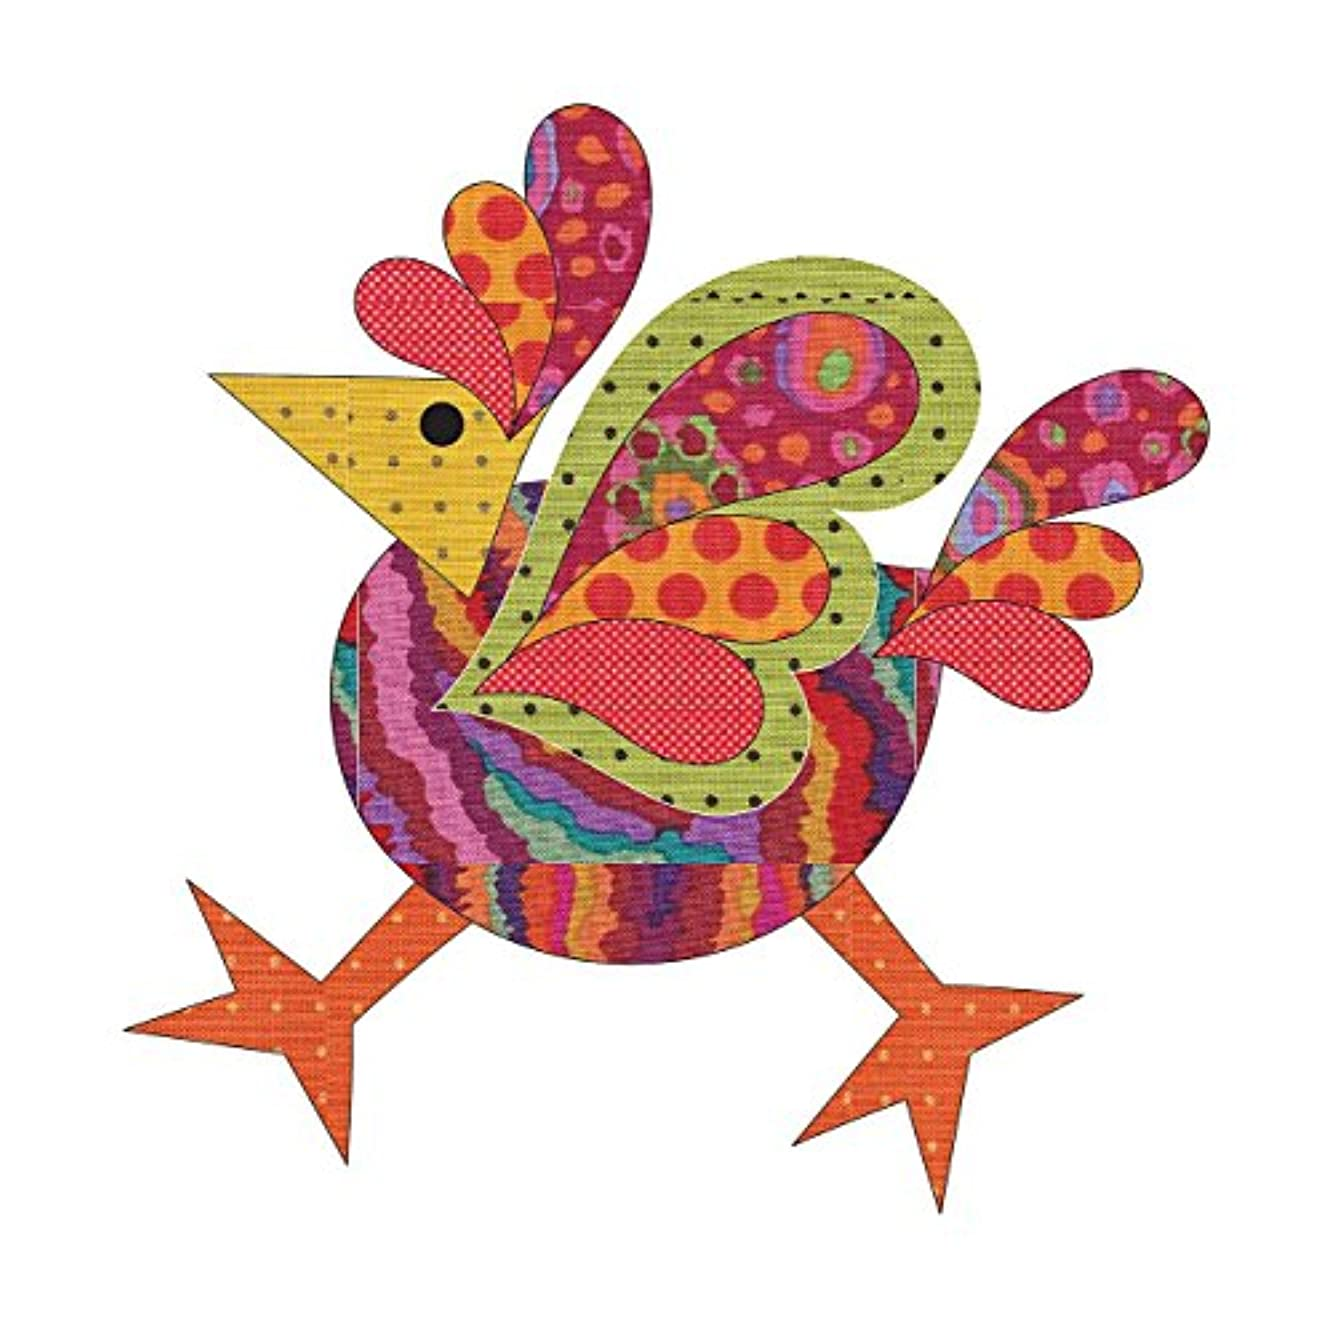 Quilting Creations Laser Cut Fusible Funky Chicken 4 Small Dotz Applique